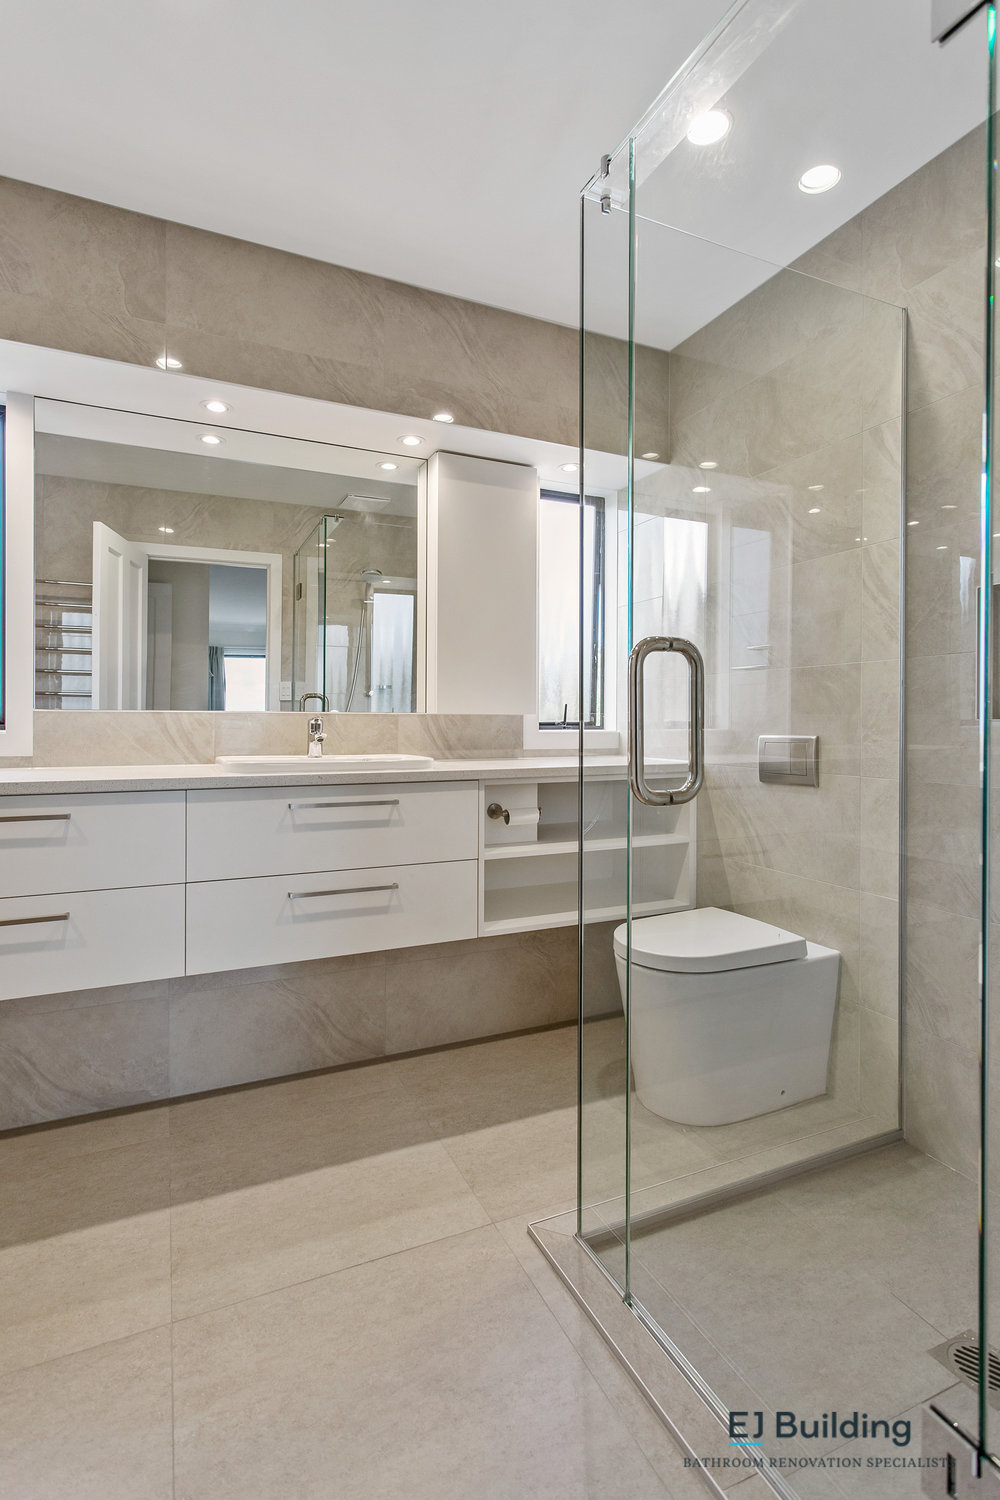 Ellerslie bathroom renovator Auckland. Great looking bathroom with large mirrors to reflect light and make the space feel larger . Bathroom Renovation by E J Building Bathroom renovators In Auckland.